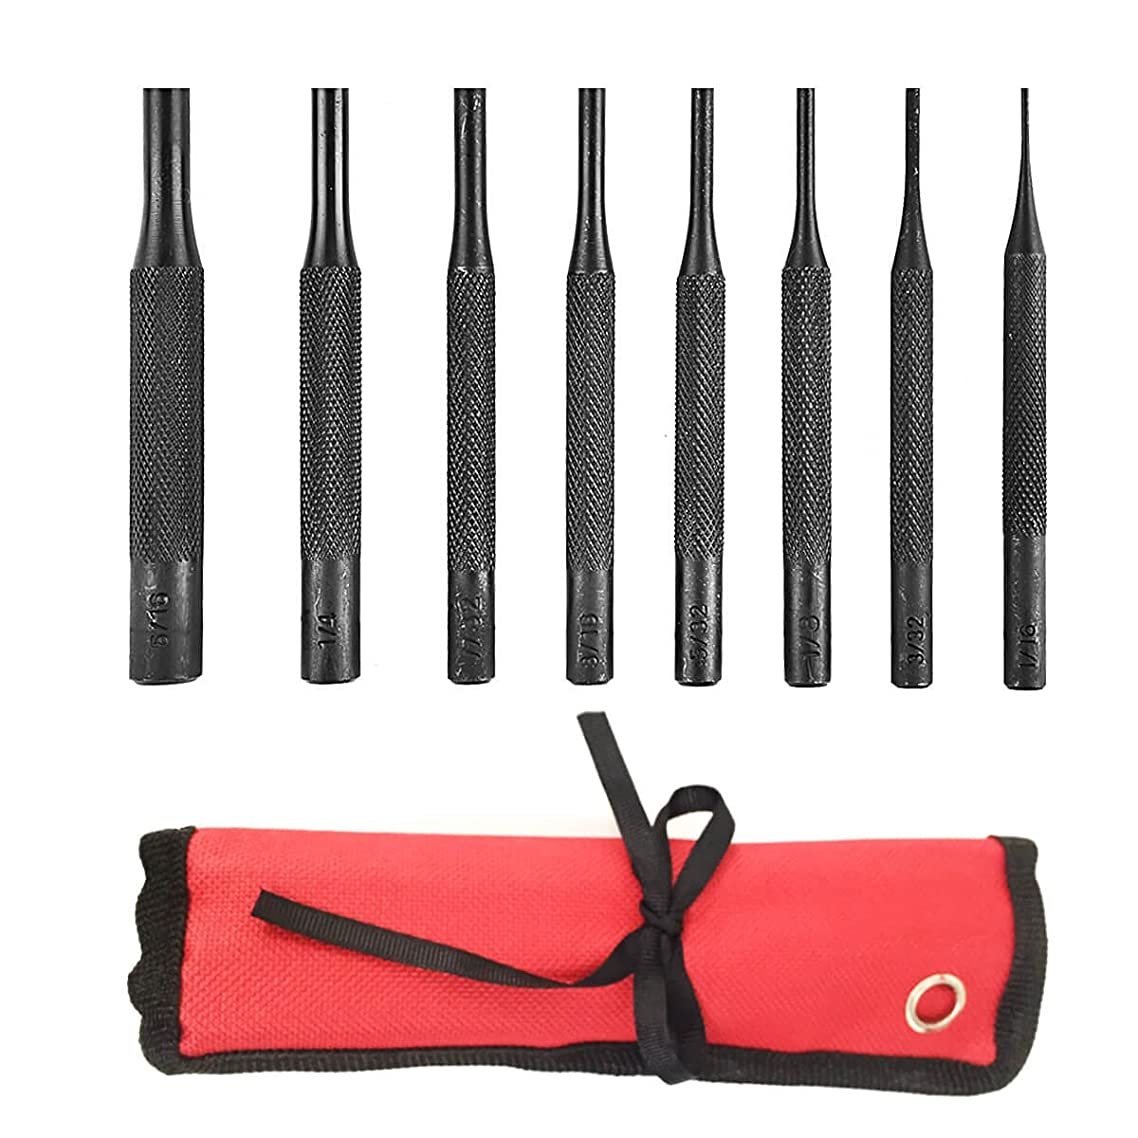 8 Pieces Pin Punch Set Tool - for Woodwork/Machinery/Gunsmith/Repairs and Crafts by Xage